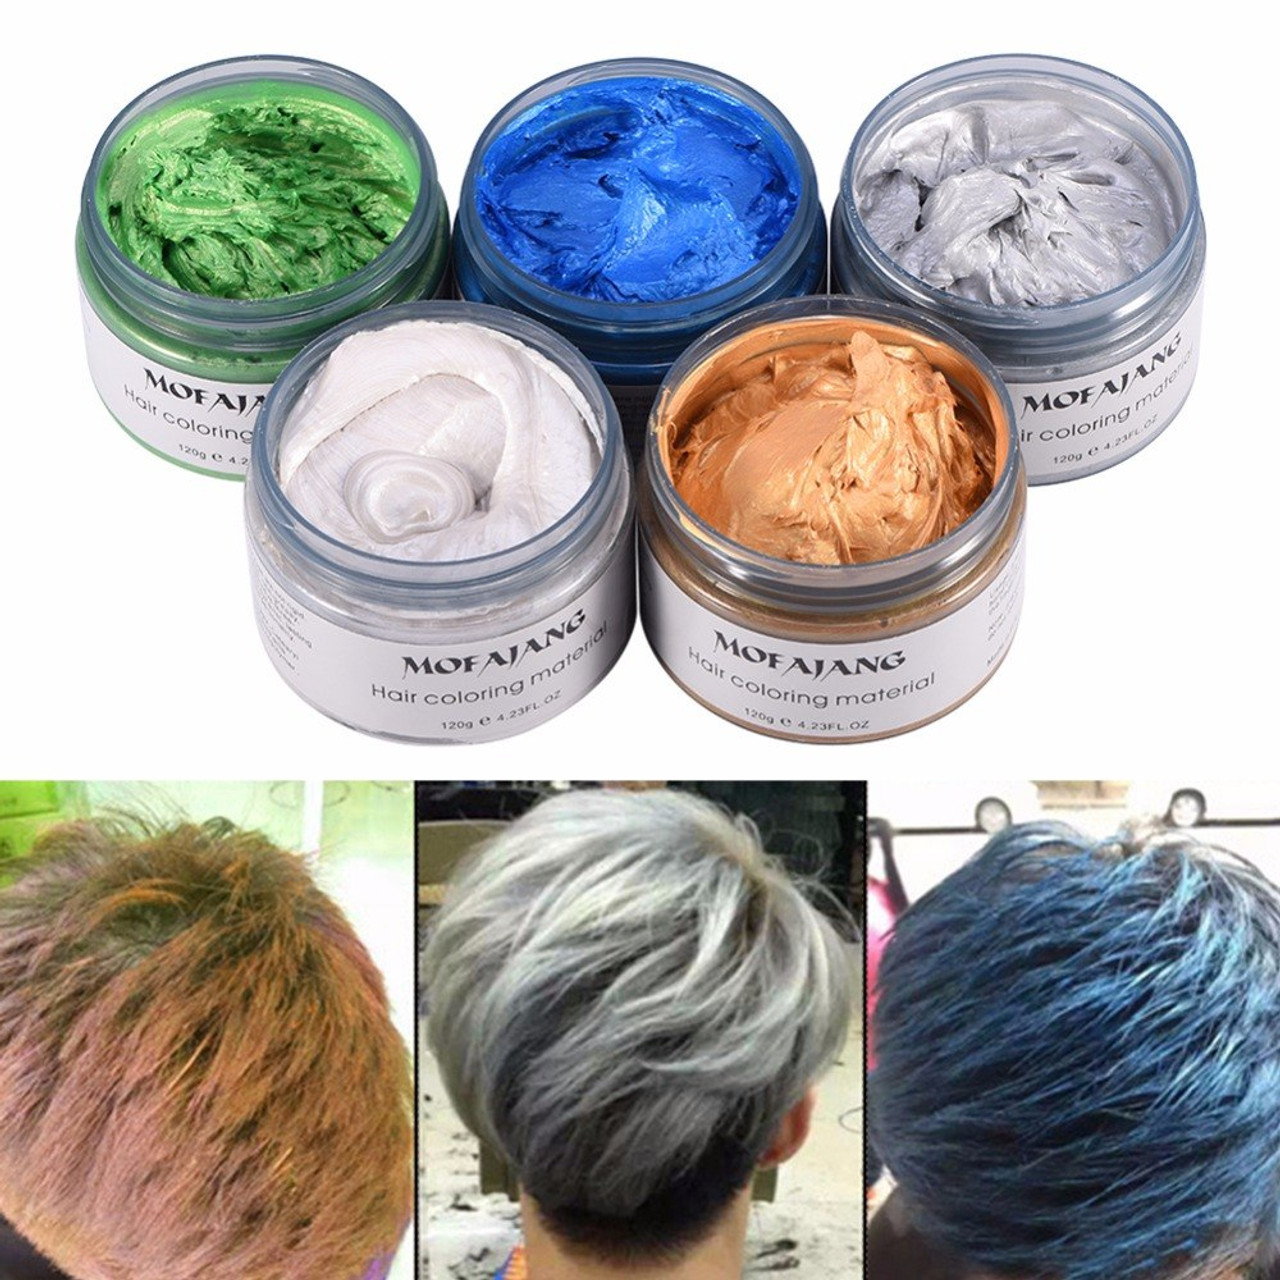 MOFAJANG 120g Hair Coloring Wax Silver Ash Grey Strong Hold ...